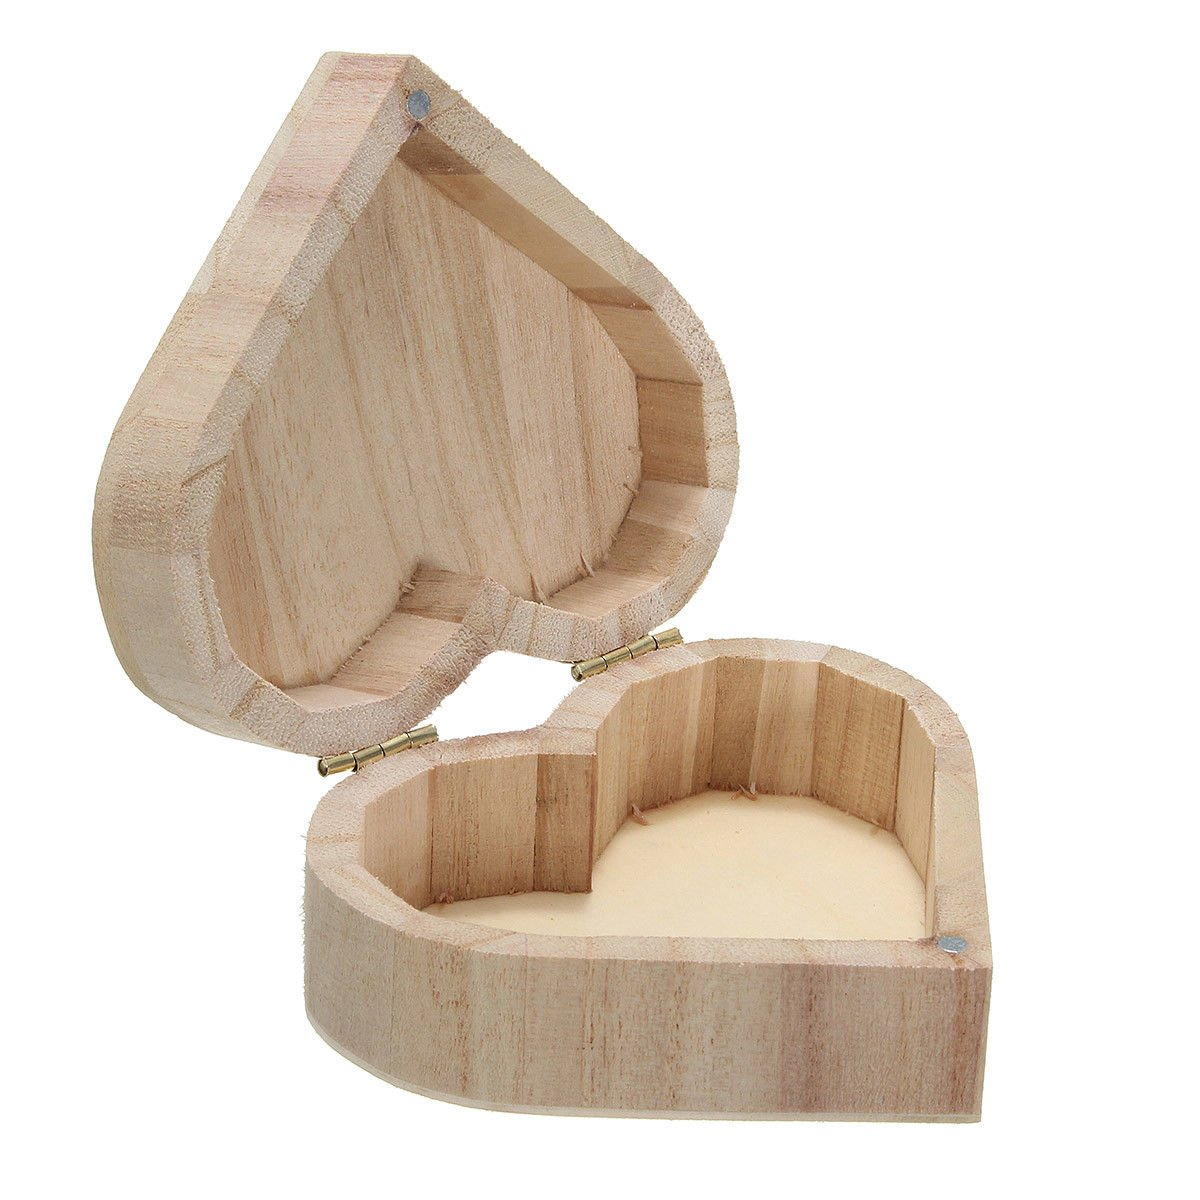 Heart Shaped Storage Handicraft Jewelry Wooden Boxes Clippers Case DIY Gift